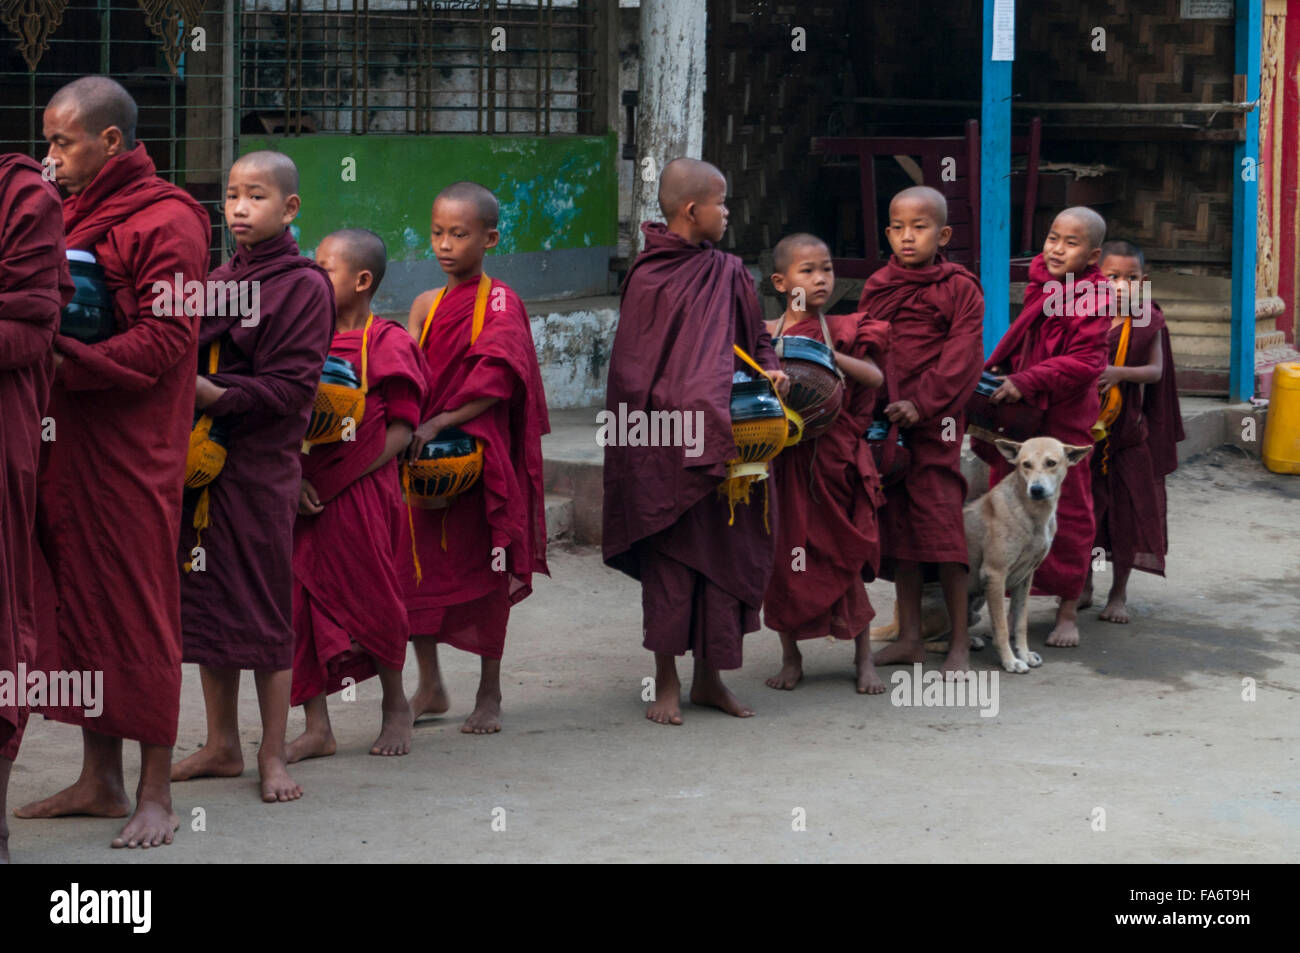 Group of juvenile Buddhist monks on alms round queuing up for food alms in Shwe Kyet Yet village, Mandalay Region, - Stock Image